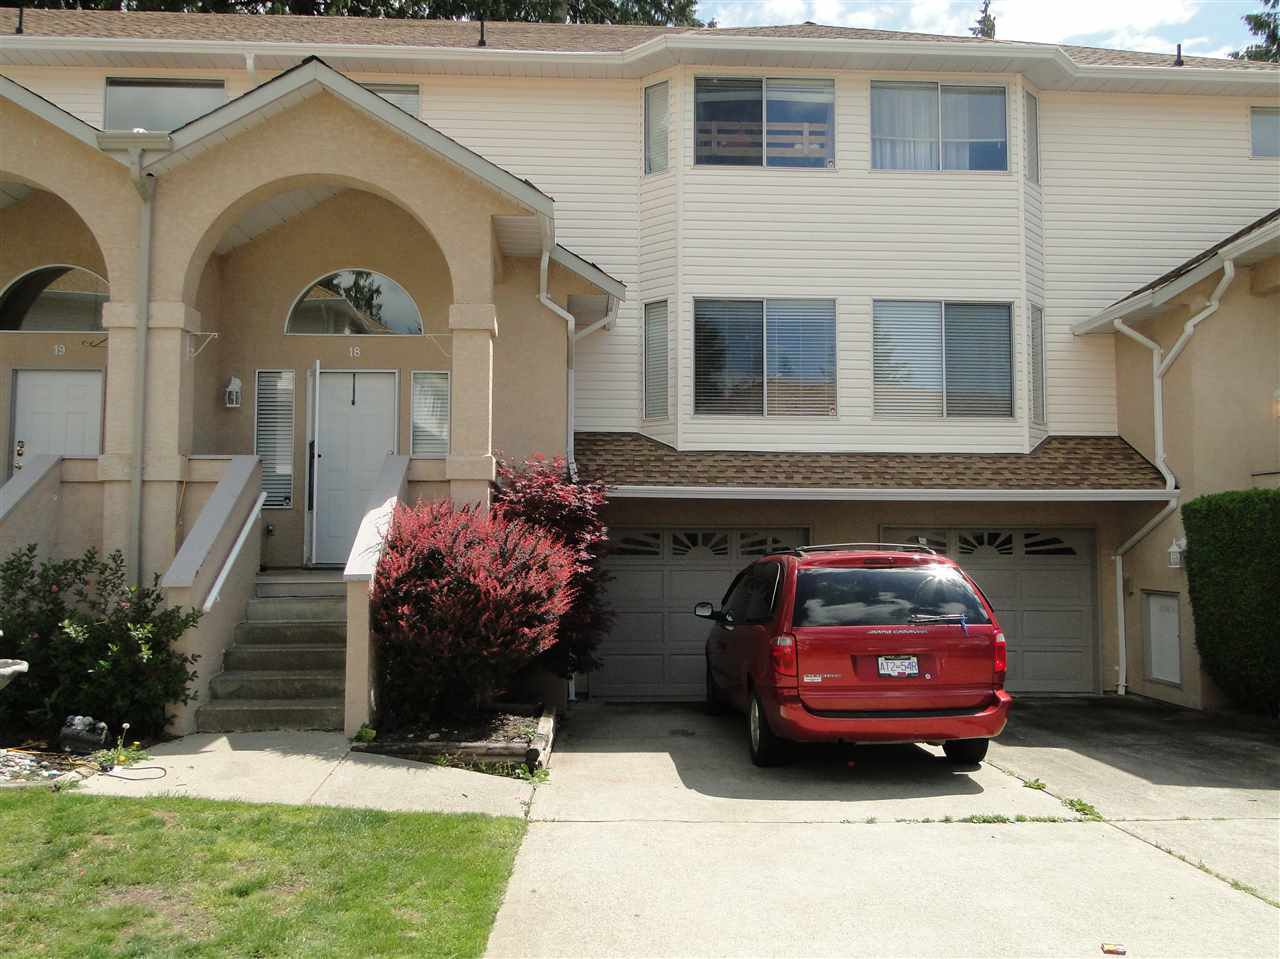 """Main Photo: 18 32339 7TH Avenue in Mission: Mission BC Townhouse for sale in """"Cedarbrooke Estates"""" : MLS®# R2073860"""